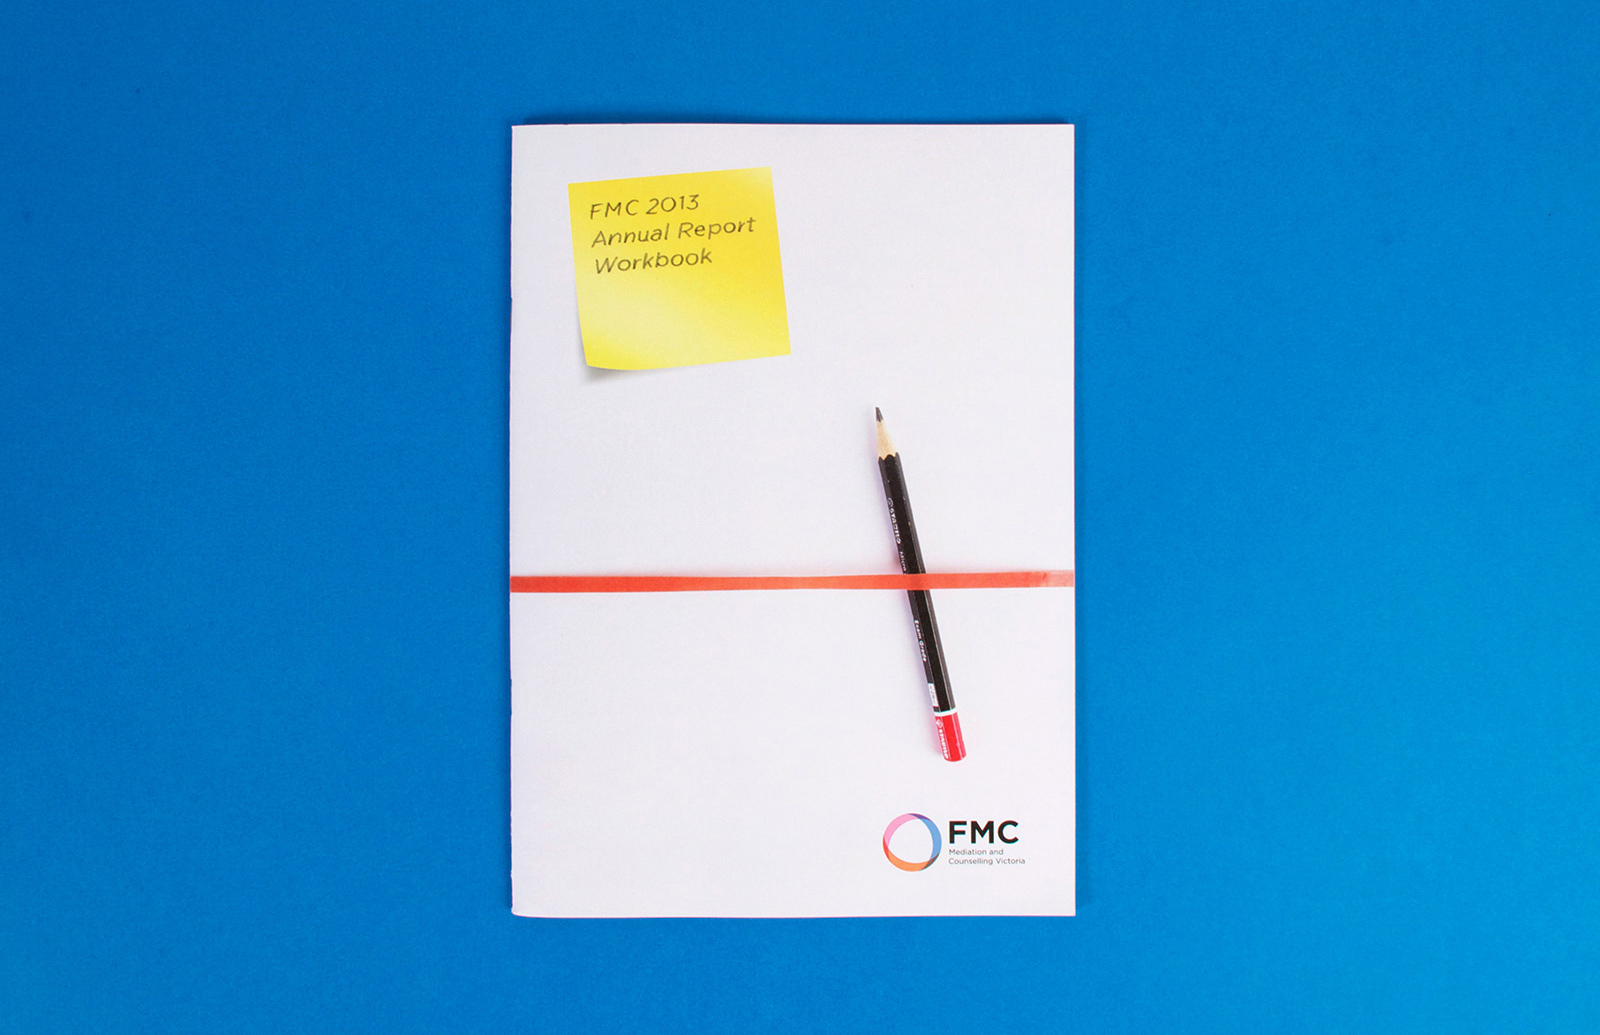 fmc-annual-report_cover-1600x1035